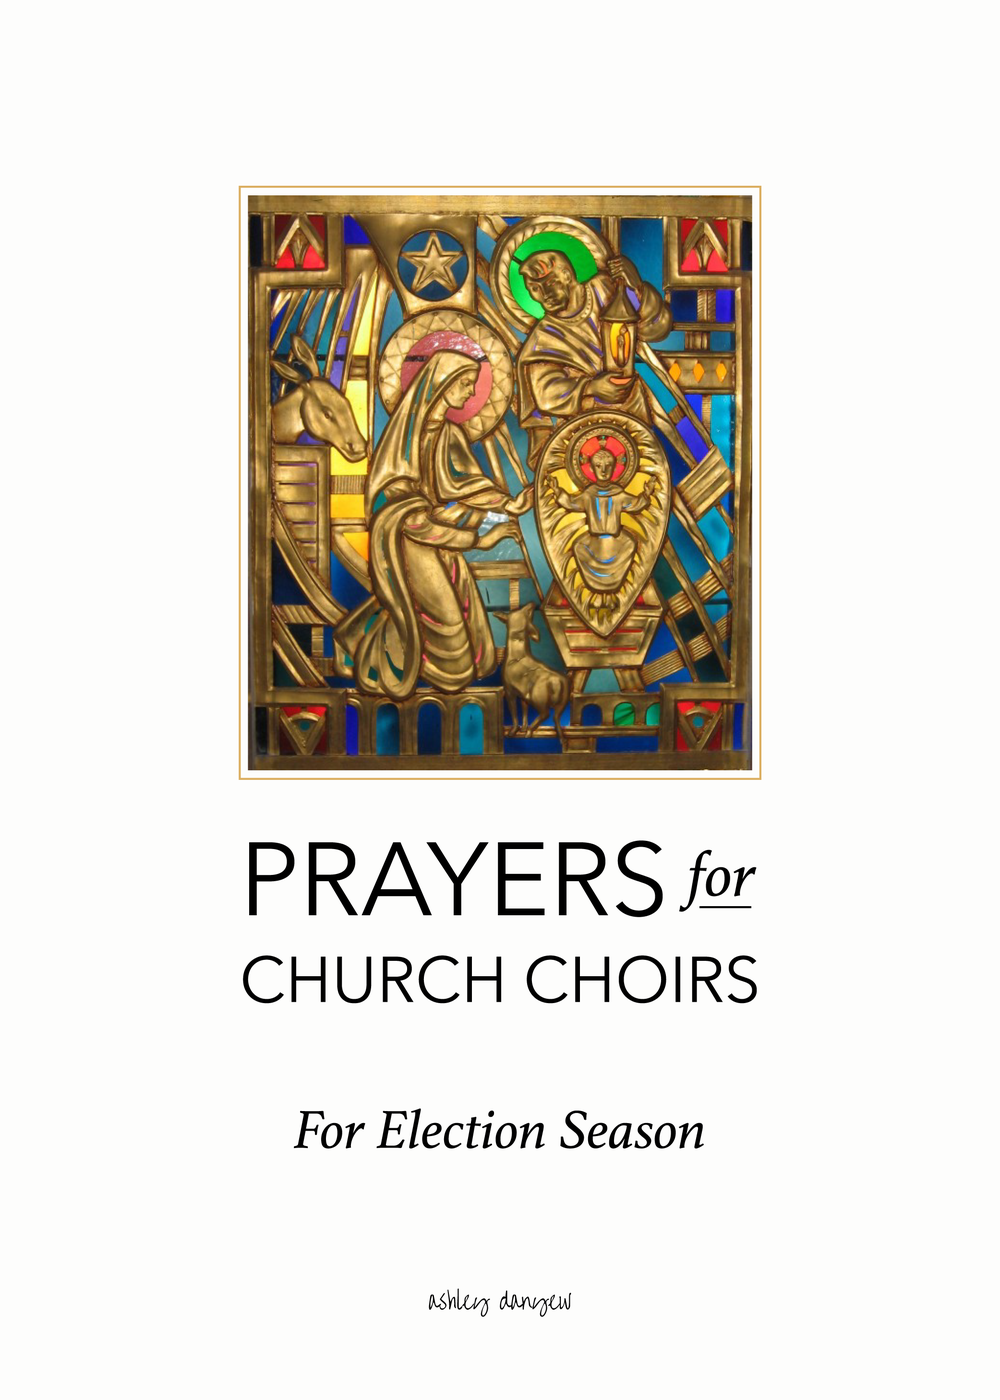 A short devotion and prayer for church choirs for election season | @ashleydanyew